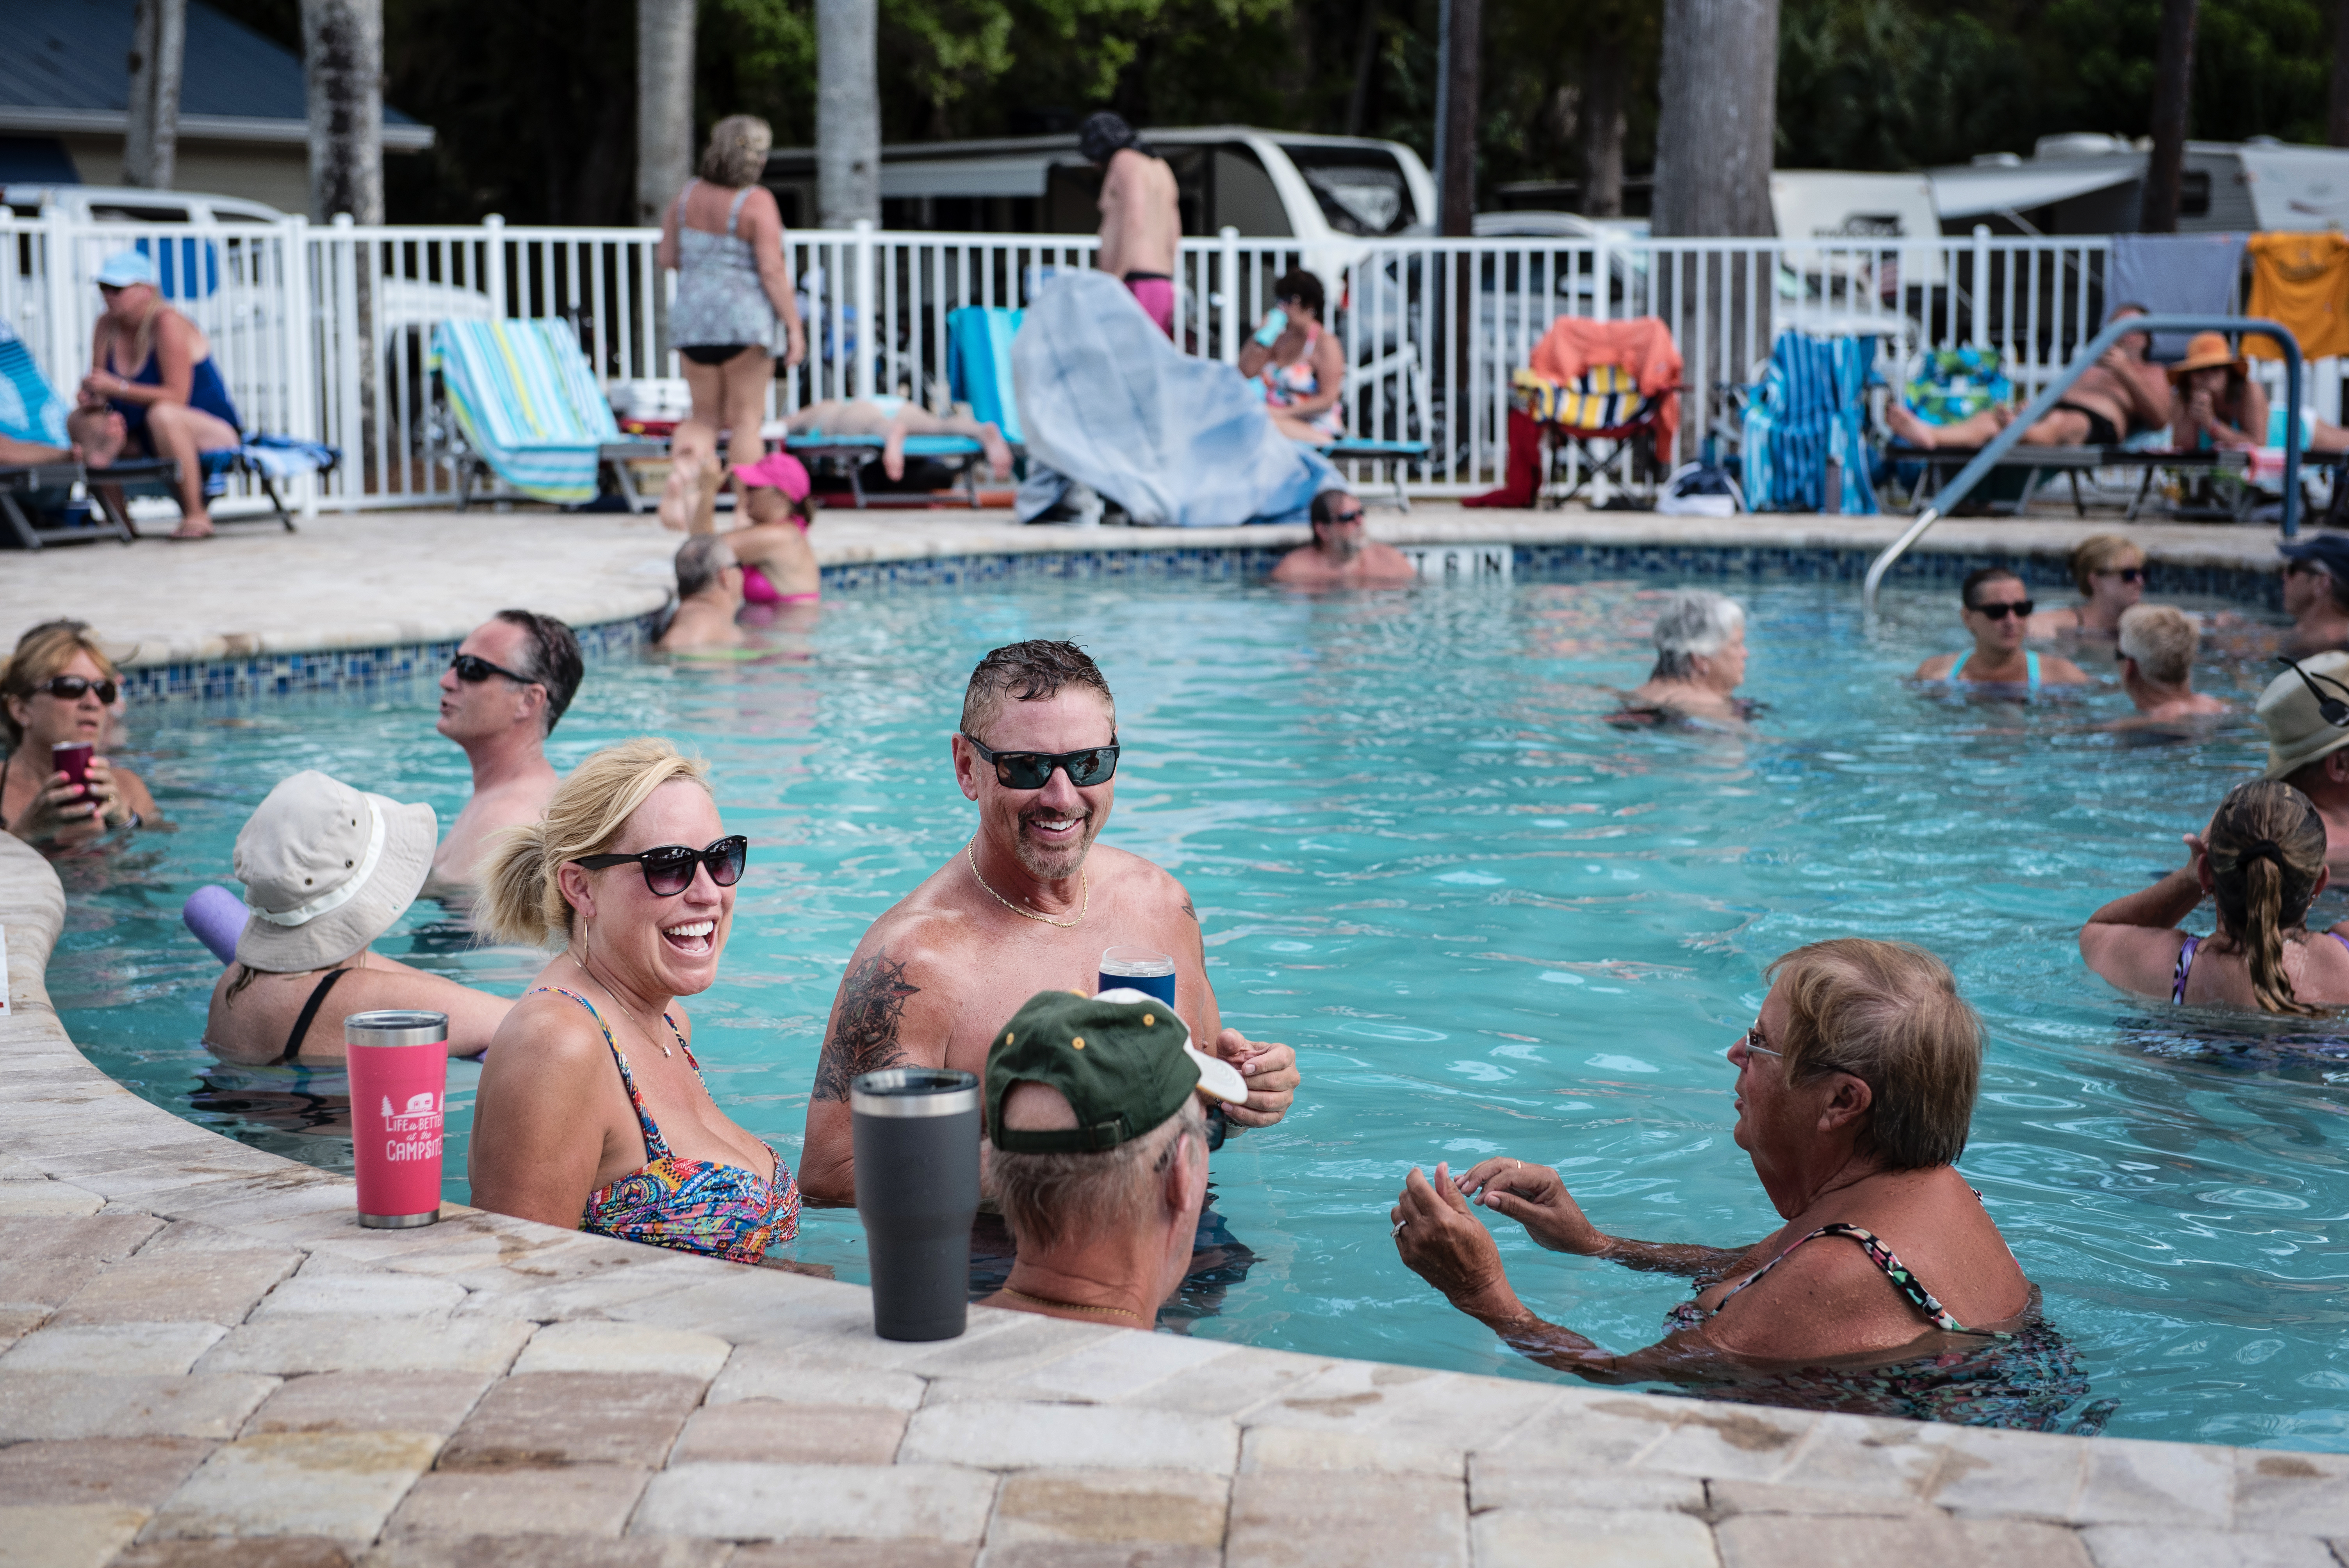 Guests having a great time at our pool complex.